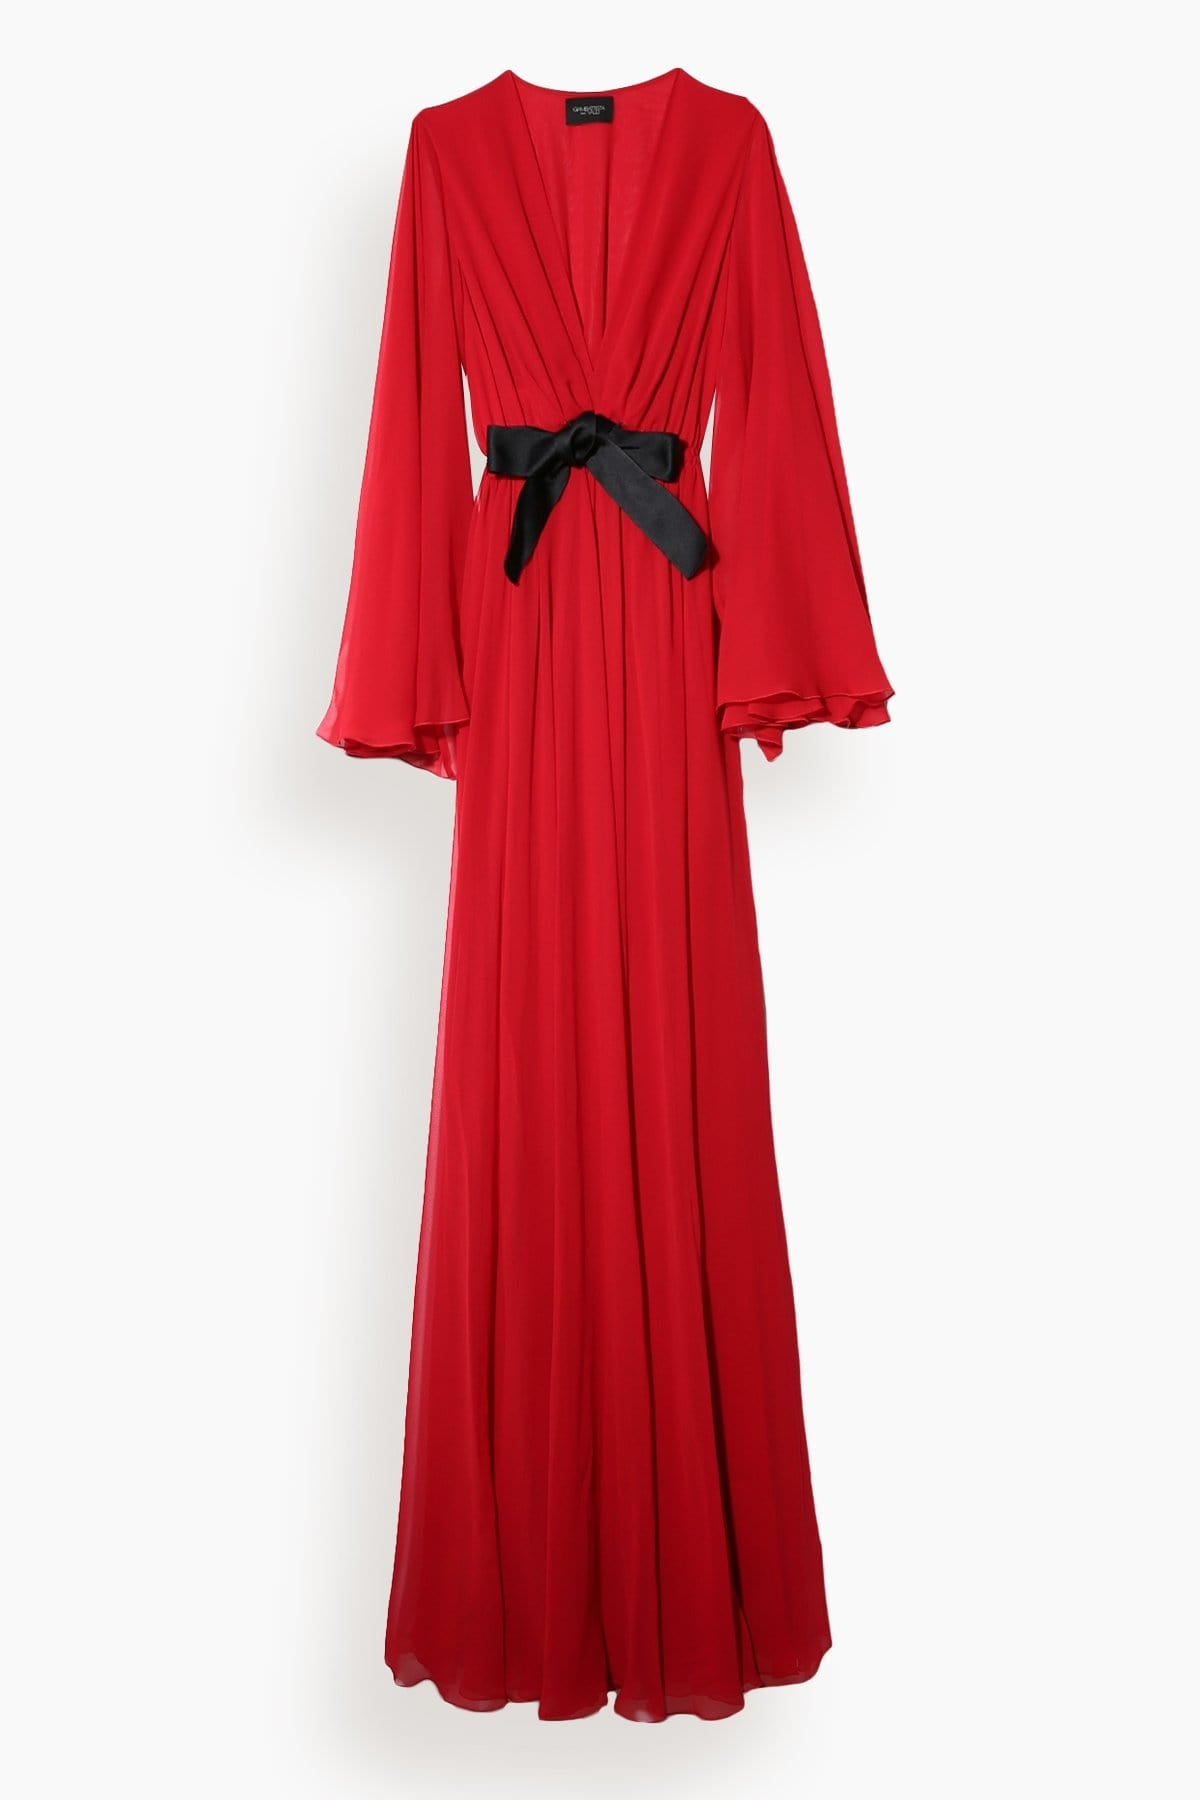 V-neck Bell Sleeves Fitted Flowy Chiffon Mother-of-the-Bride Dress With a Bow(s)